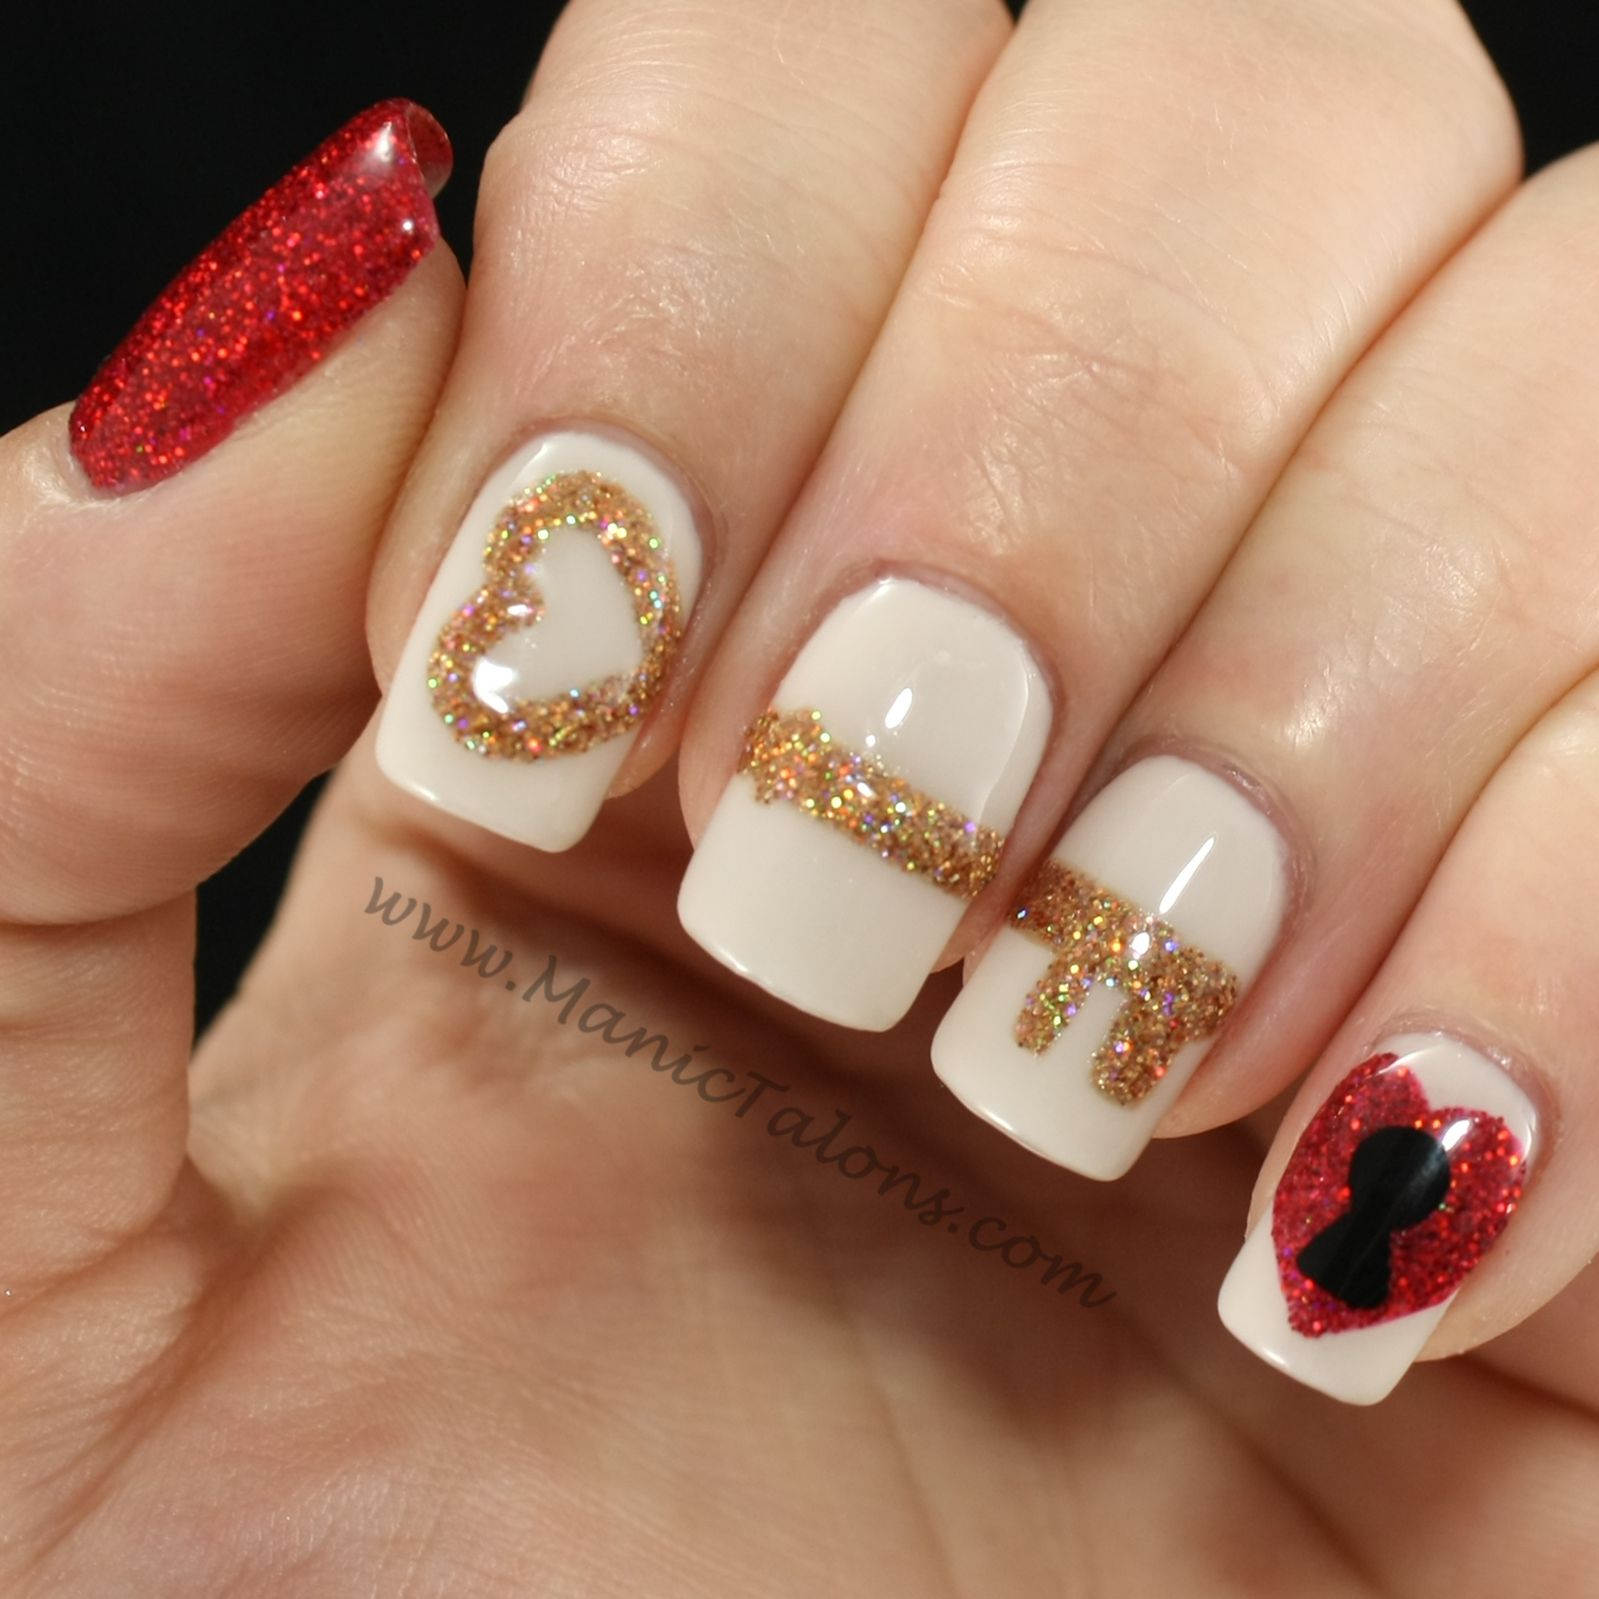 Key To My Heart Manicure. The perfect #Mani for Valentine's Day!